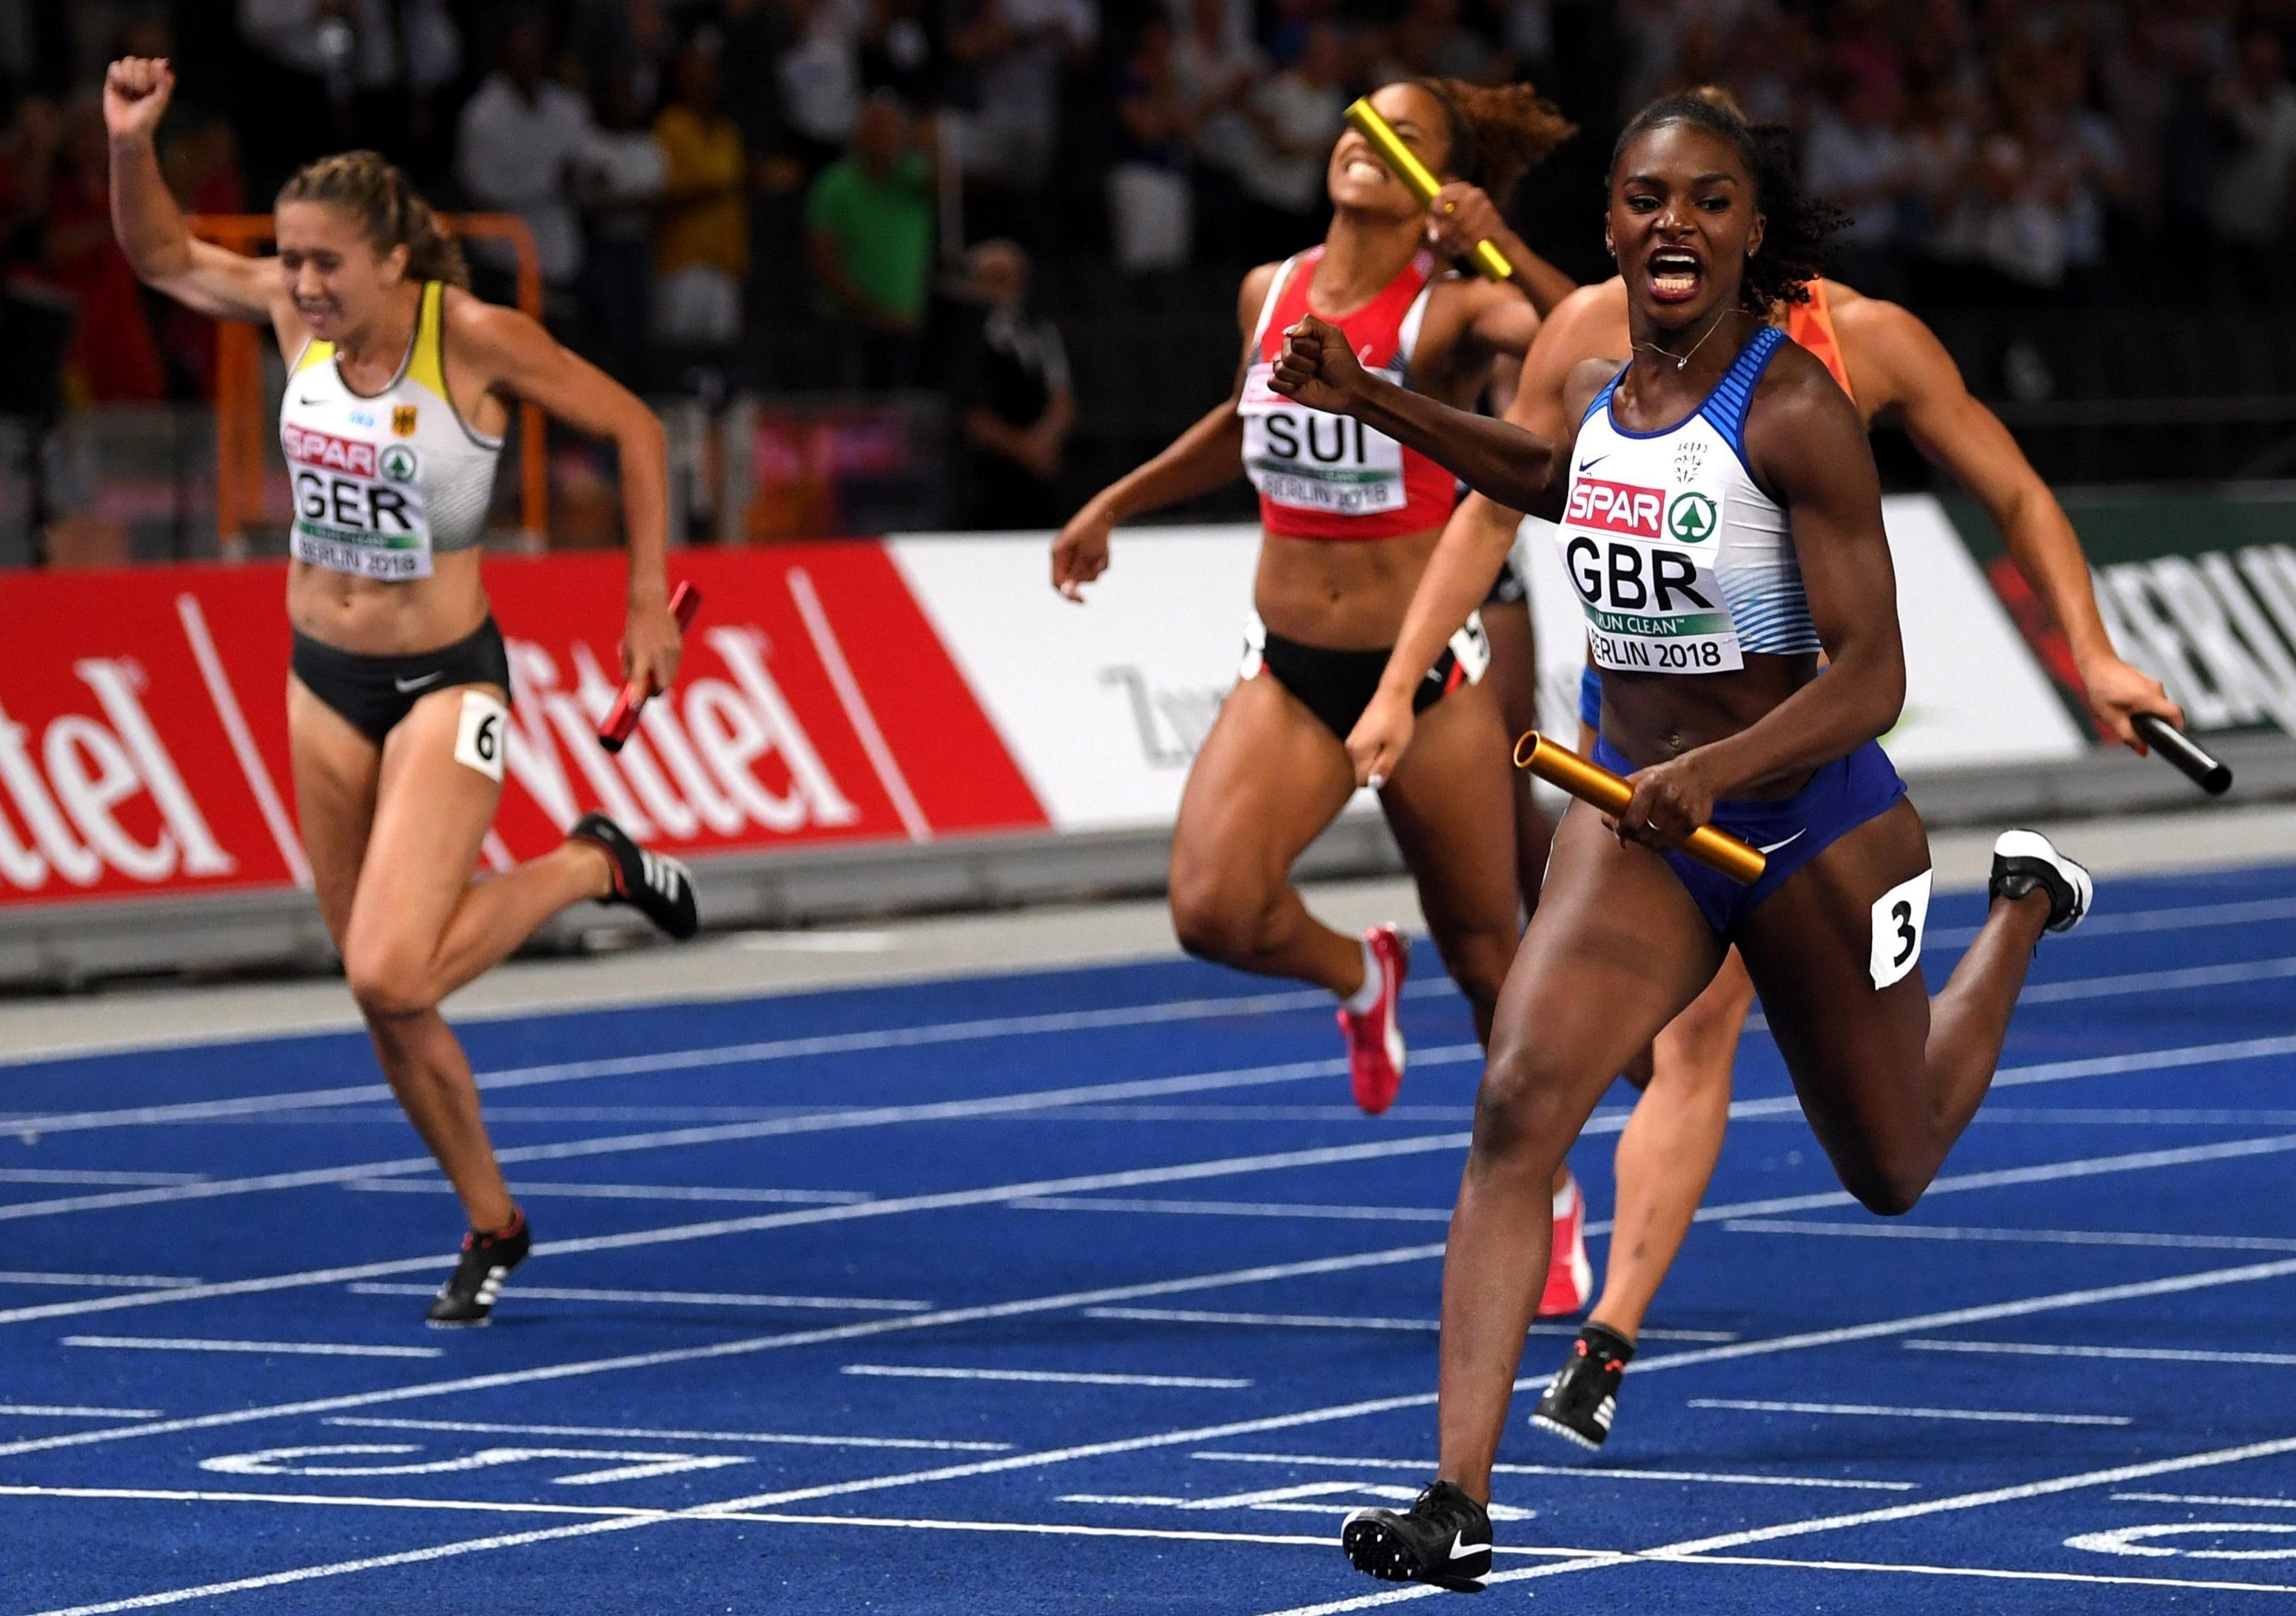 The British sprint hero raced home to win the relay